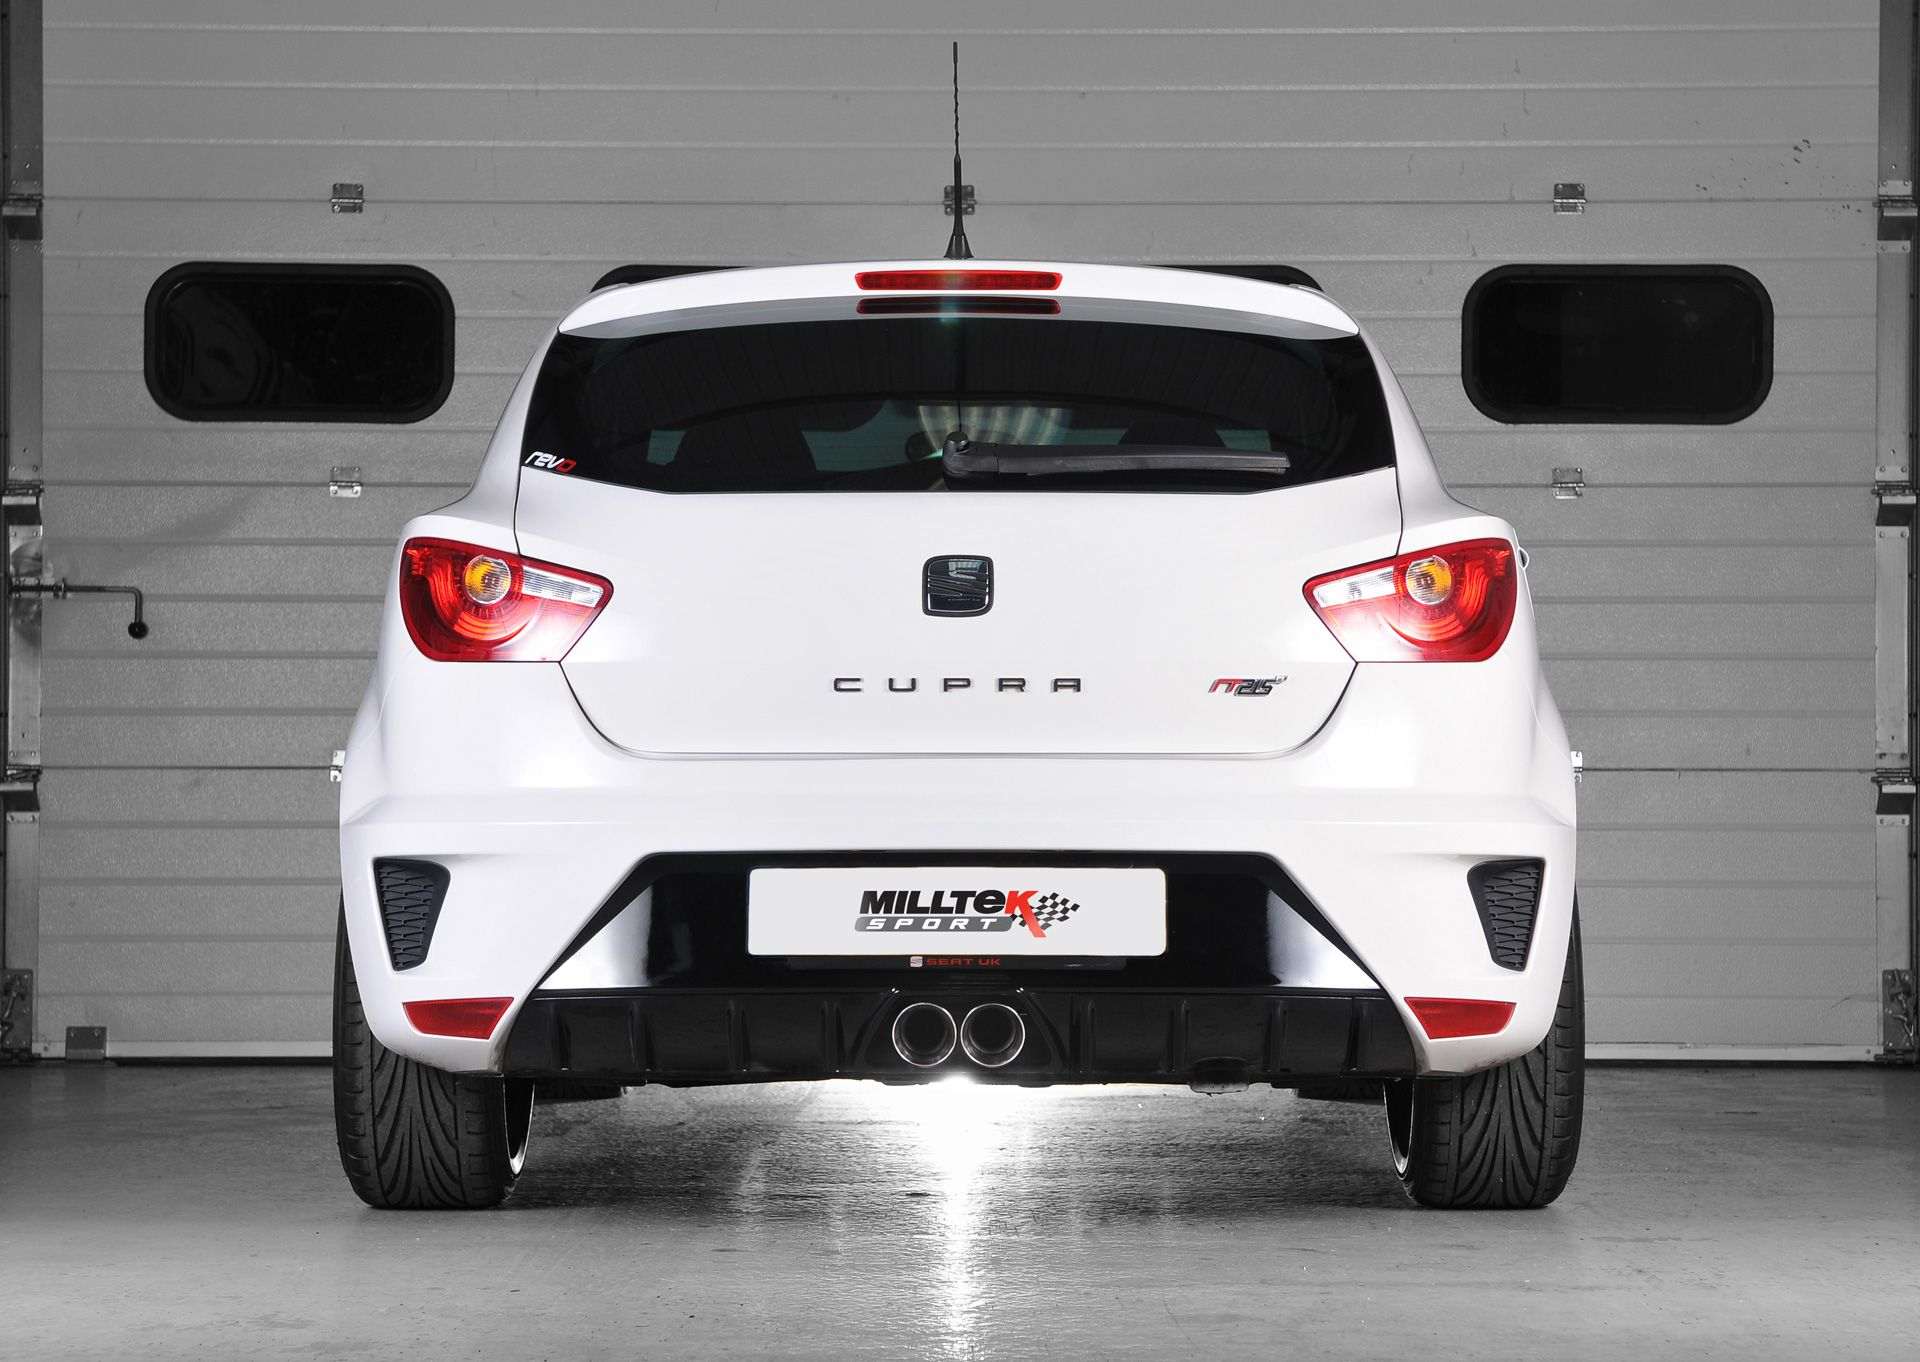 seat ibiza cupra 1 4 tsi technical details history. Black Bedroom Furniture Sets. Home Design Ideas